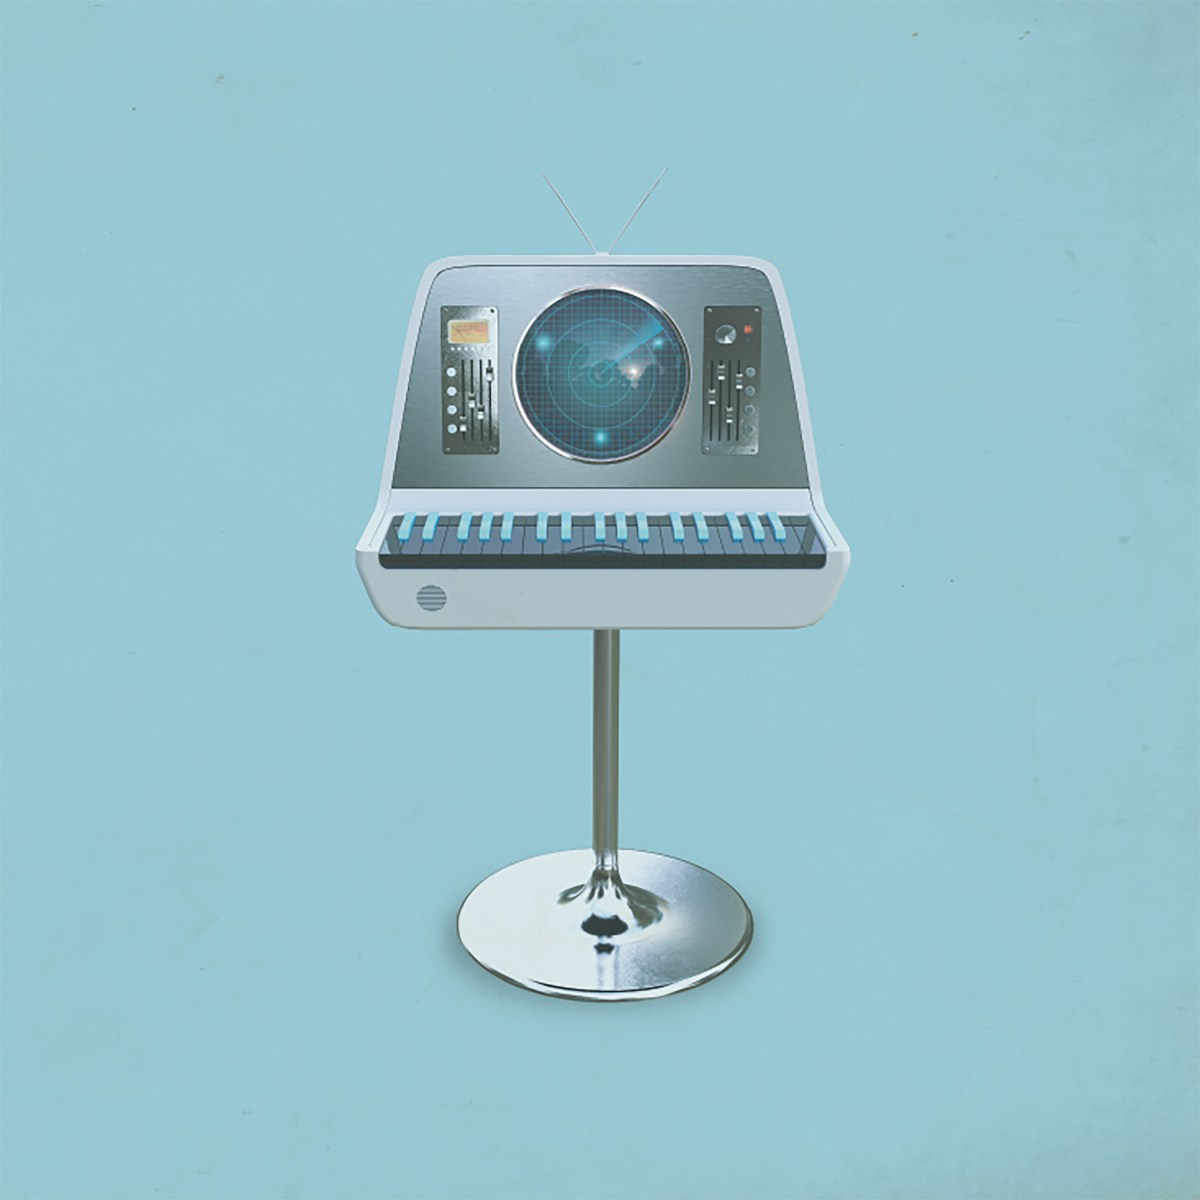 Enter Shikari - The Spark (Album Review)